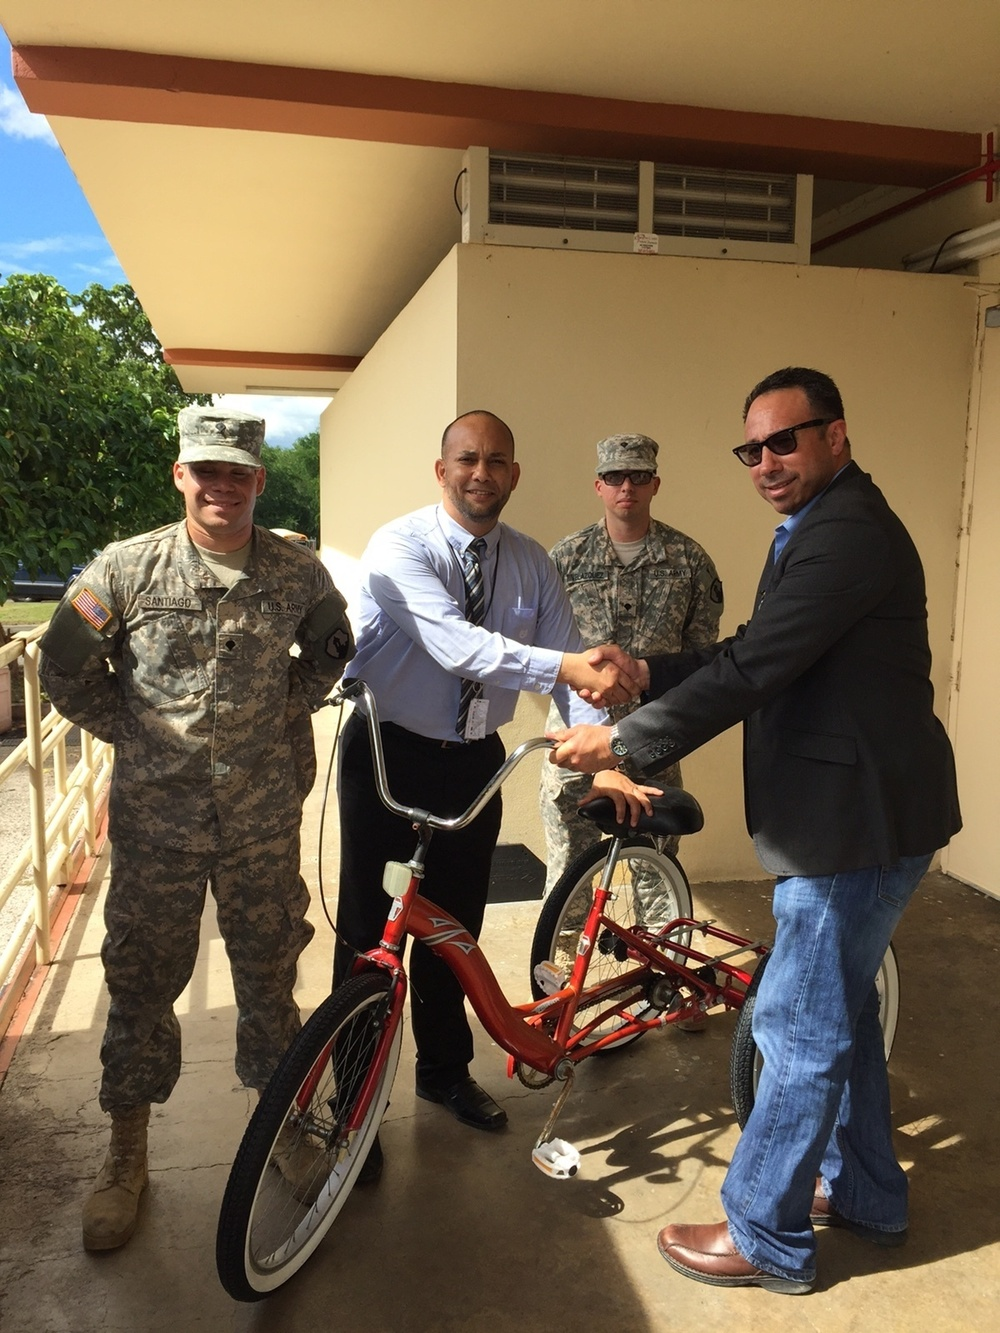 Bicycles for Veterans